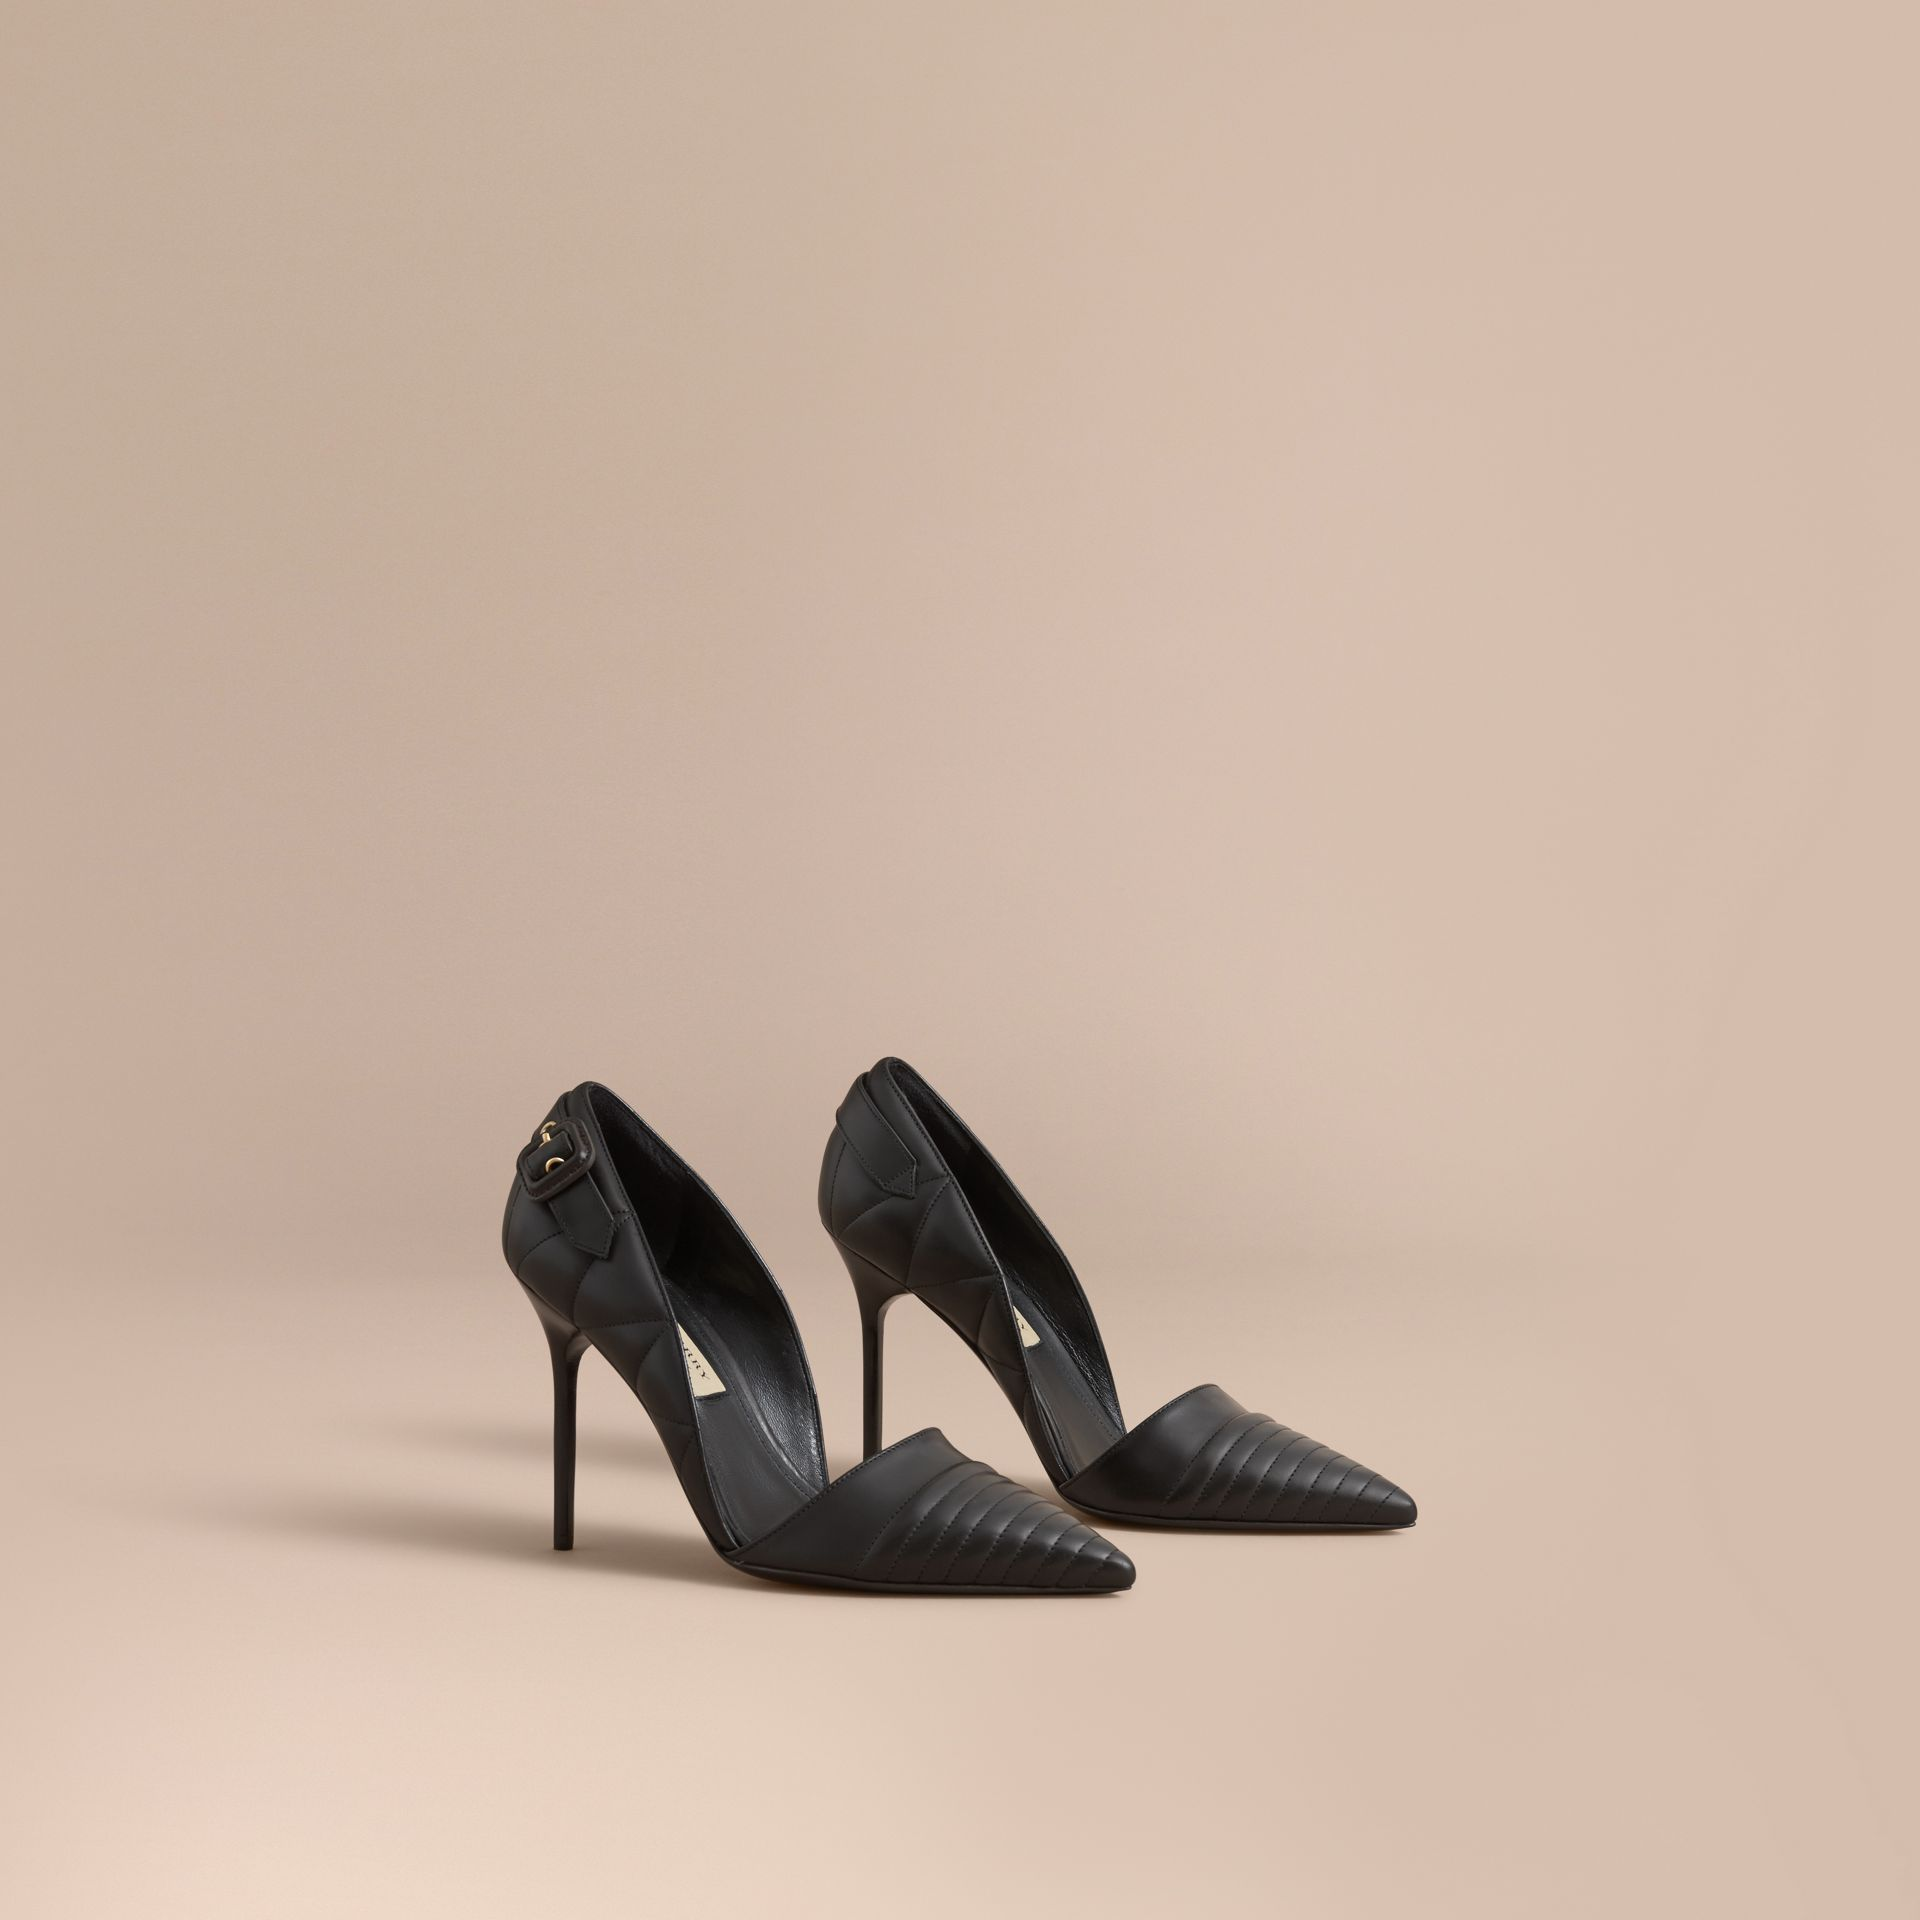 Quilted Leather D'Orsay Pumps in Black - Women | Burberry - gallery image 1